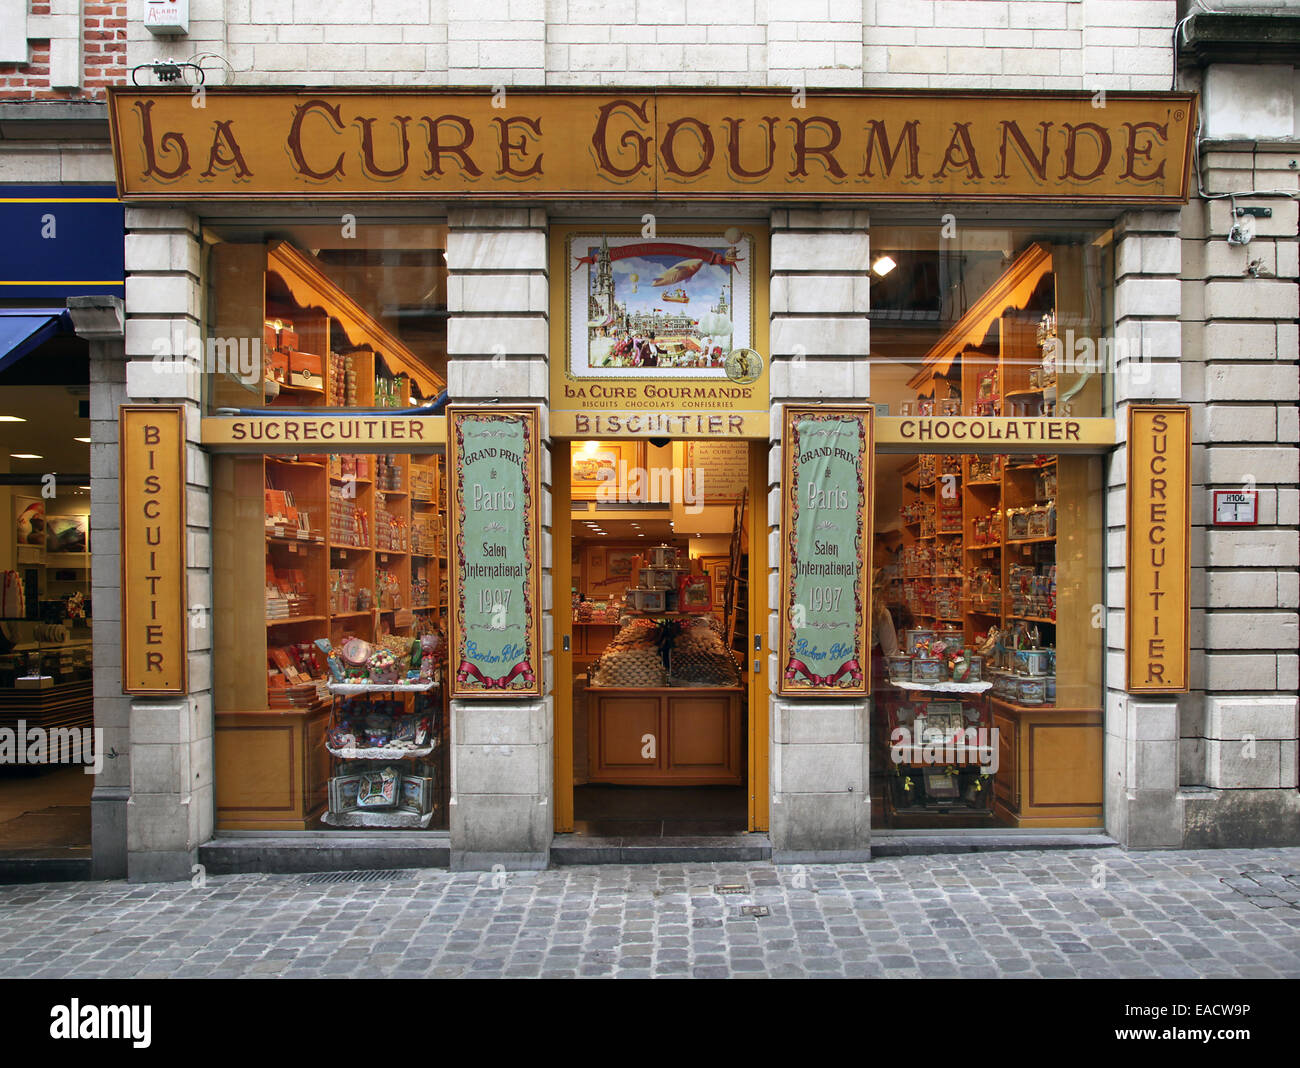 La Cure Gourmand chocolate shop.sweet.biscuit.Brussels.Belgium. - Stock Image